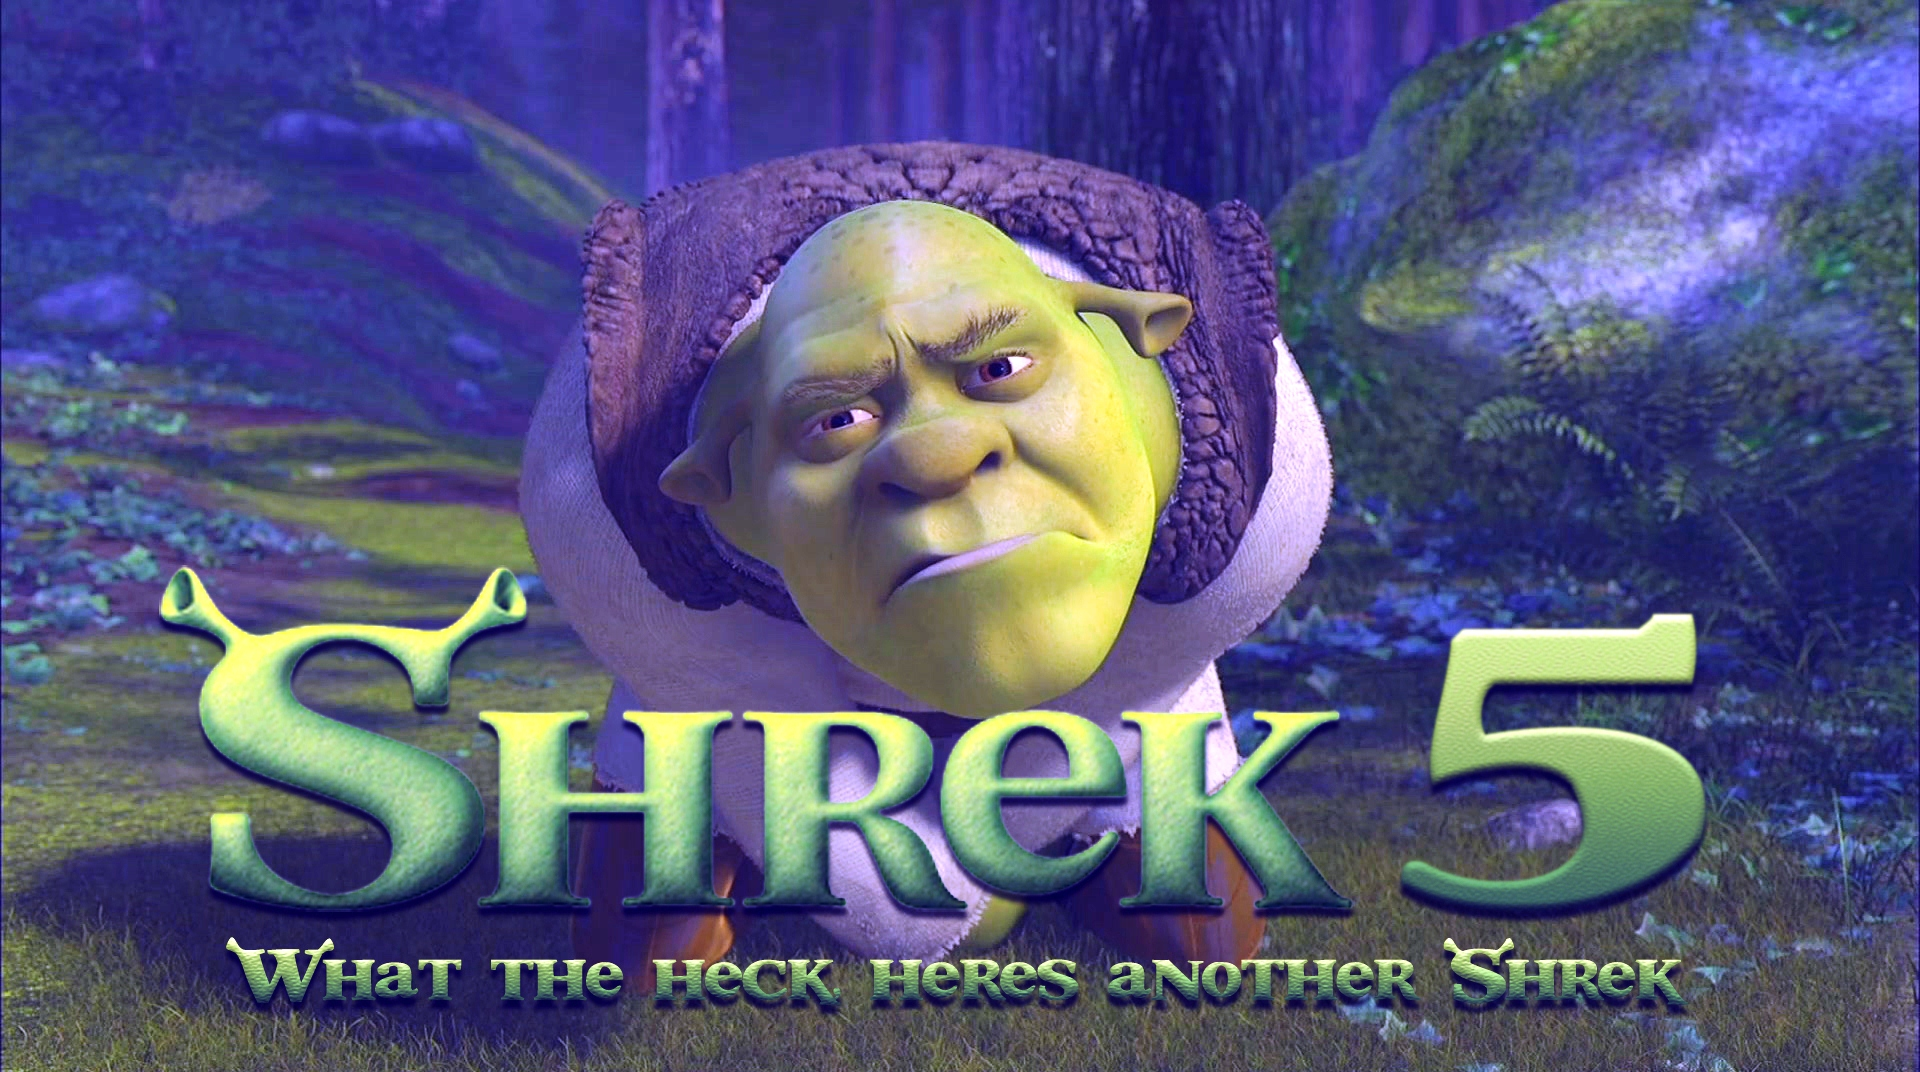 Shrek 5 Release Date, Trailer, Cast and Latest News